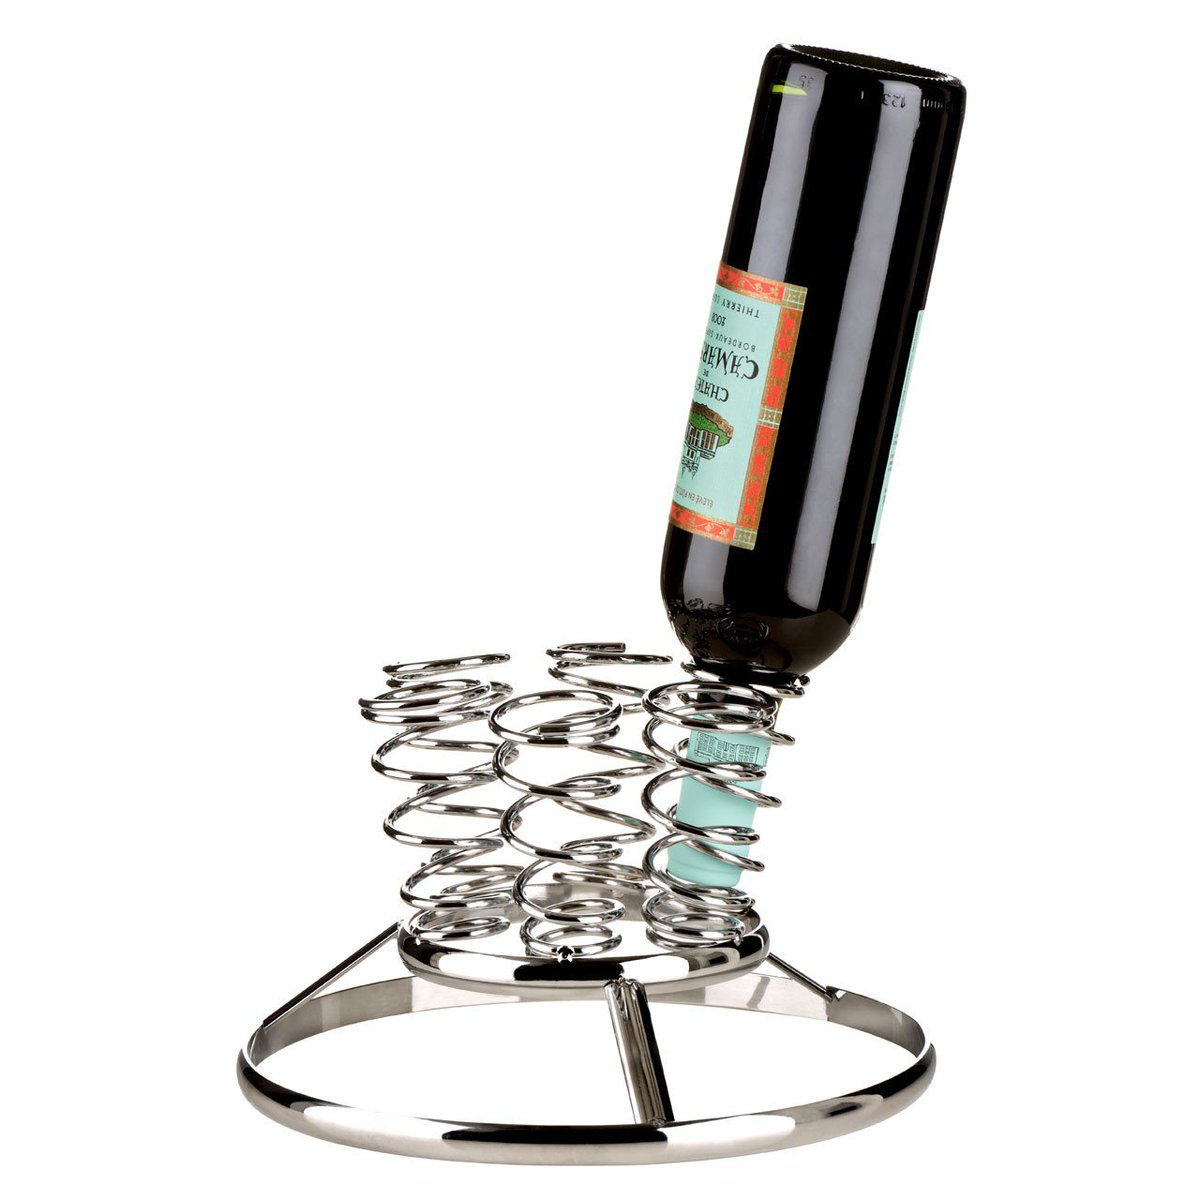 This #CHROME #FINISH #WINE #RACK holds up to 6 #BOTTLES held upside down to create a #Abstract #Style @biglivinguk  http://www. bigliving.co.uk/furniture/stor ages/wine-racks/wine-rack-chrome-finish-6-bottle.html &nbsp; … <br>http://pic.twitter.com/UBiDOH3xft